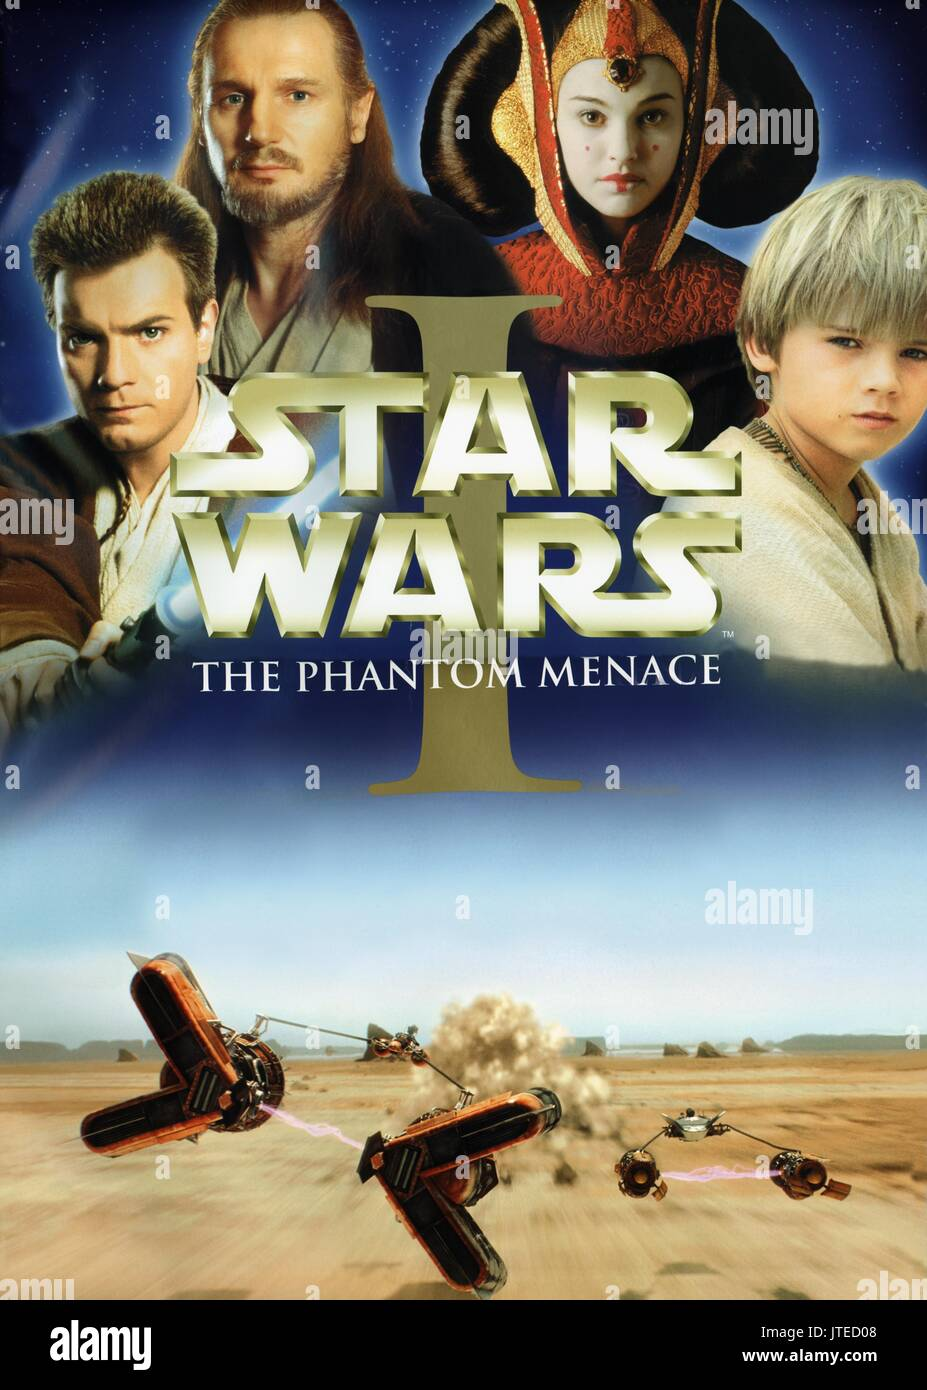 Star Wars The Phantom Menace Poster High Resolution Stock Photography And Images Alamy